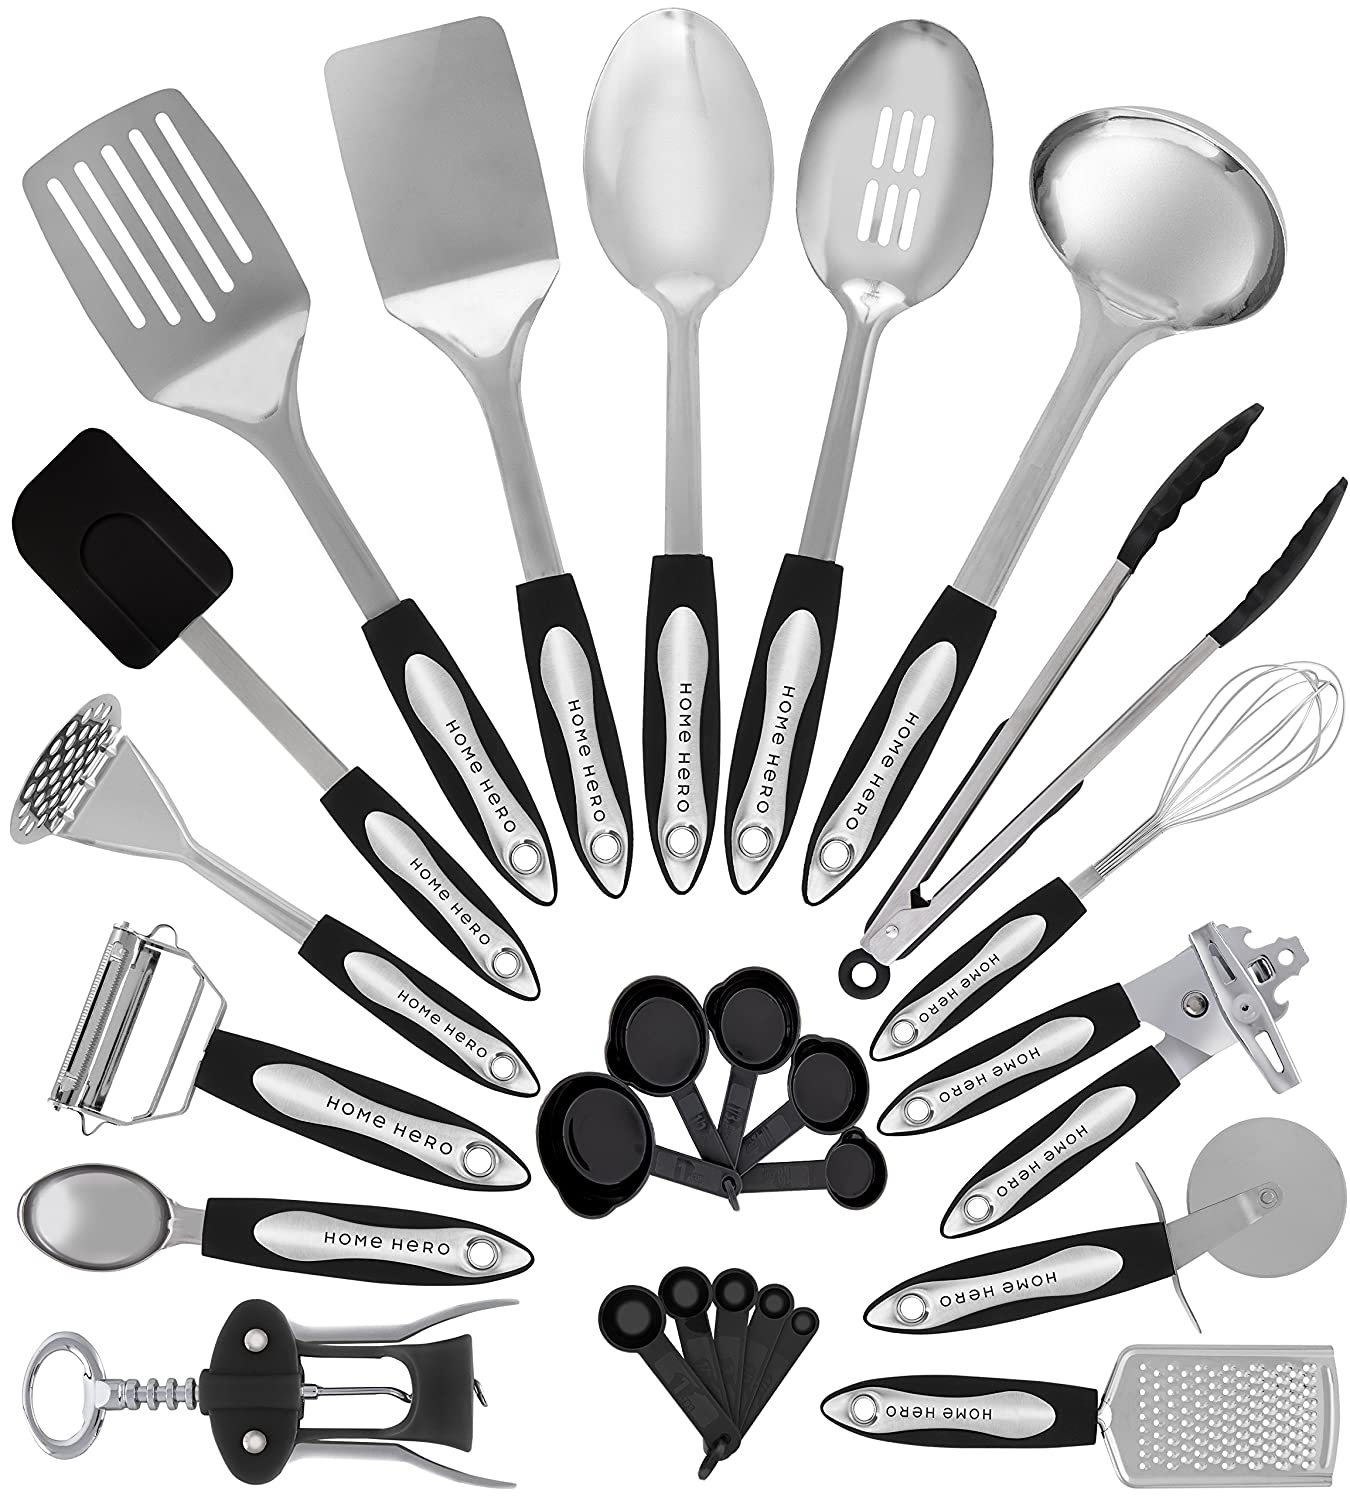 Details about Stainless Steel Kitchen Utensil Set - 25 Cooking Utensils -  Nonstick...